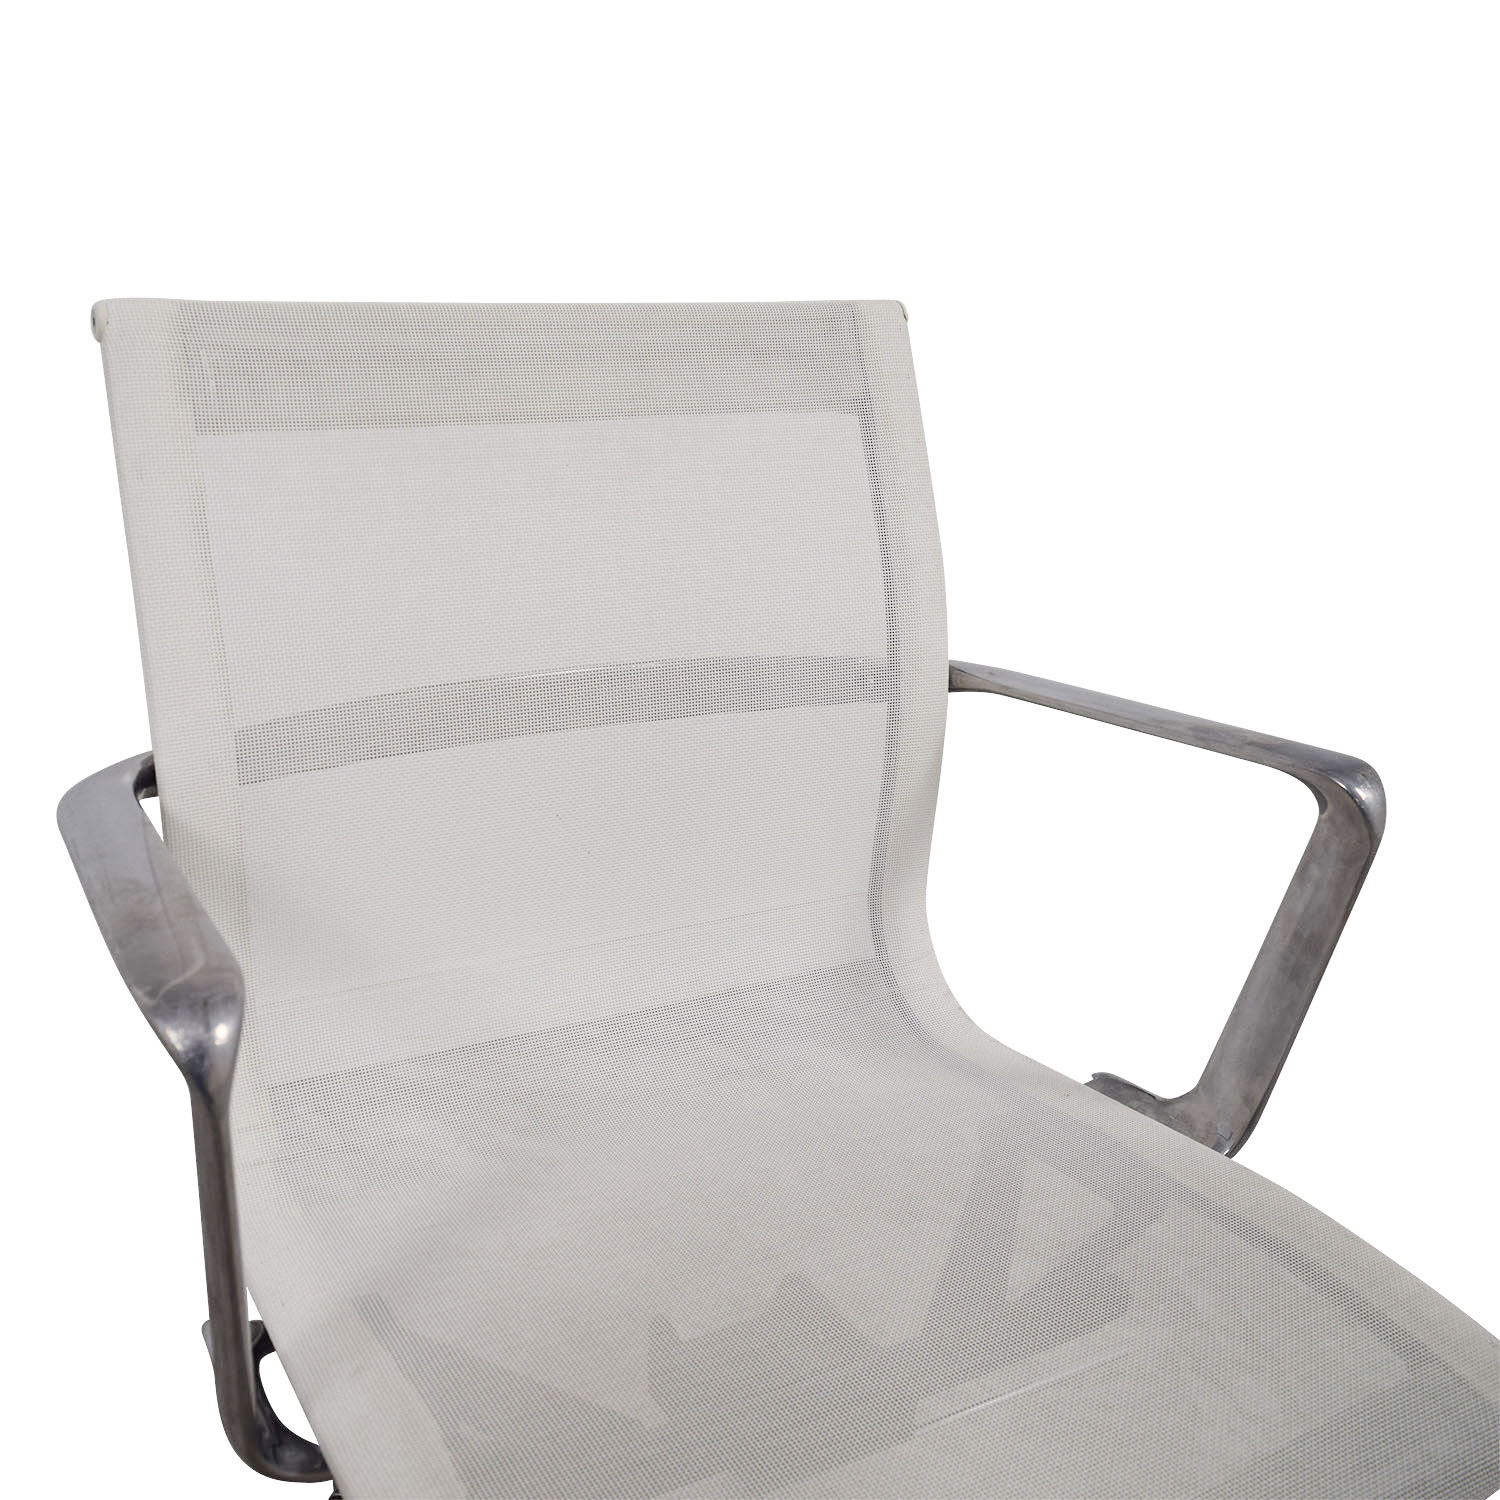 International Catsana Furniture International Catsana Furniture Una White Mesh Chair for sale